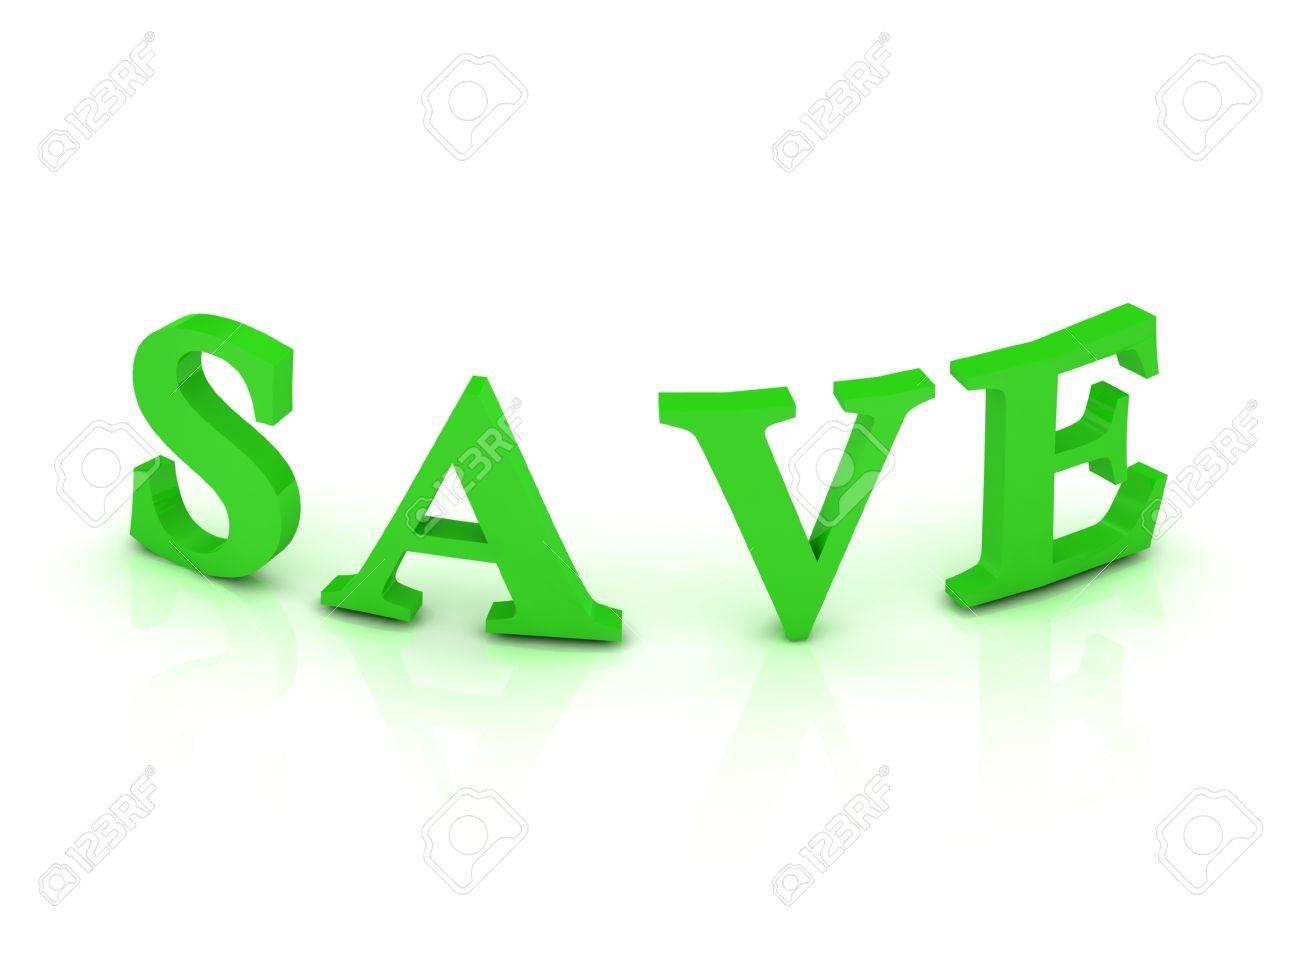 SAVE sign with green letters on isolated white background Stock Photo - 14688046